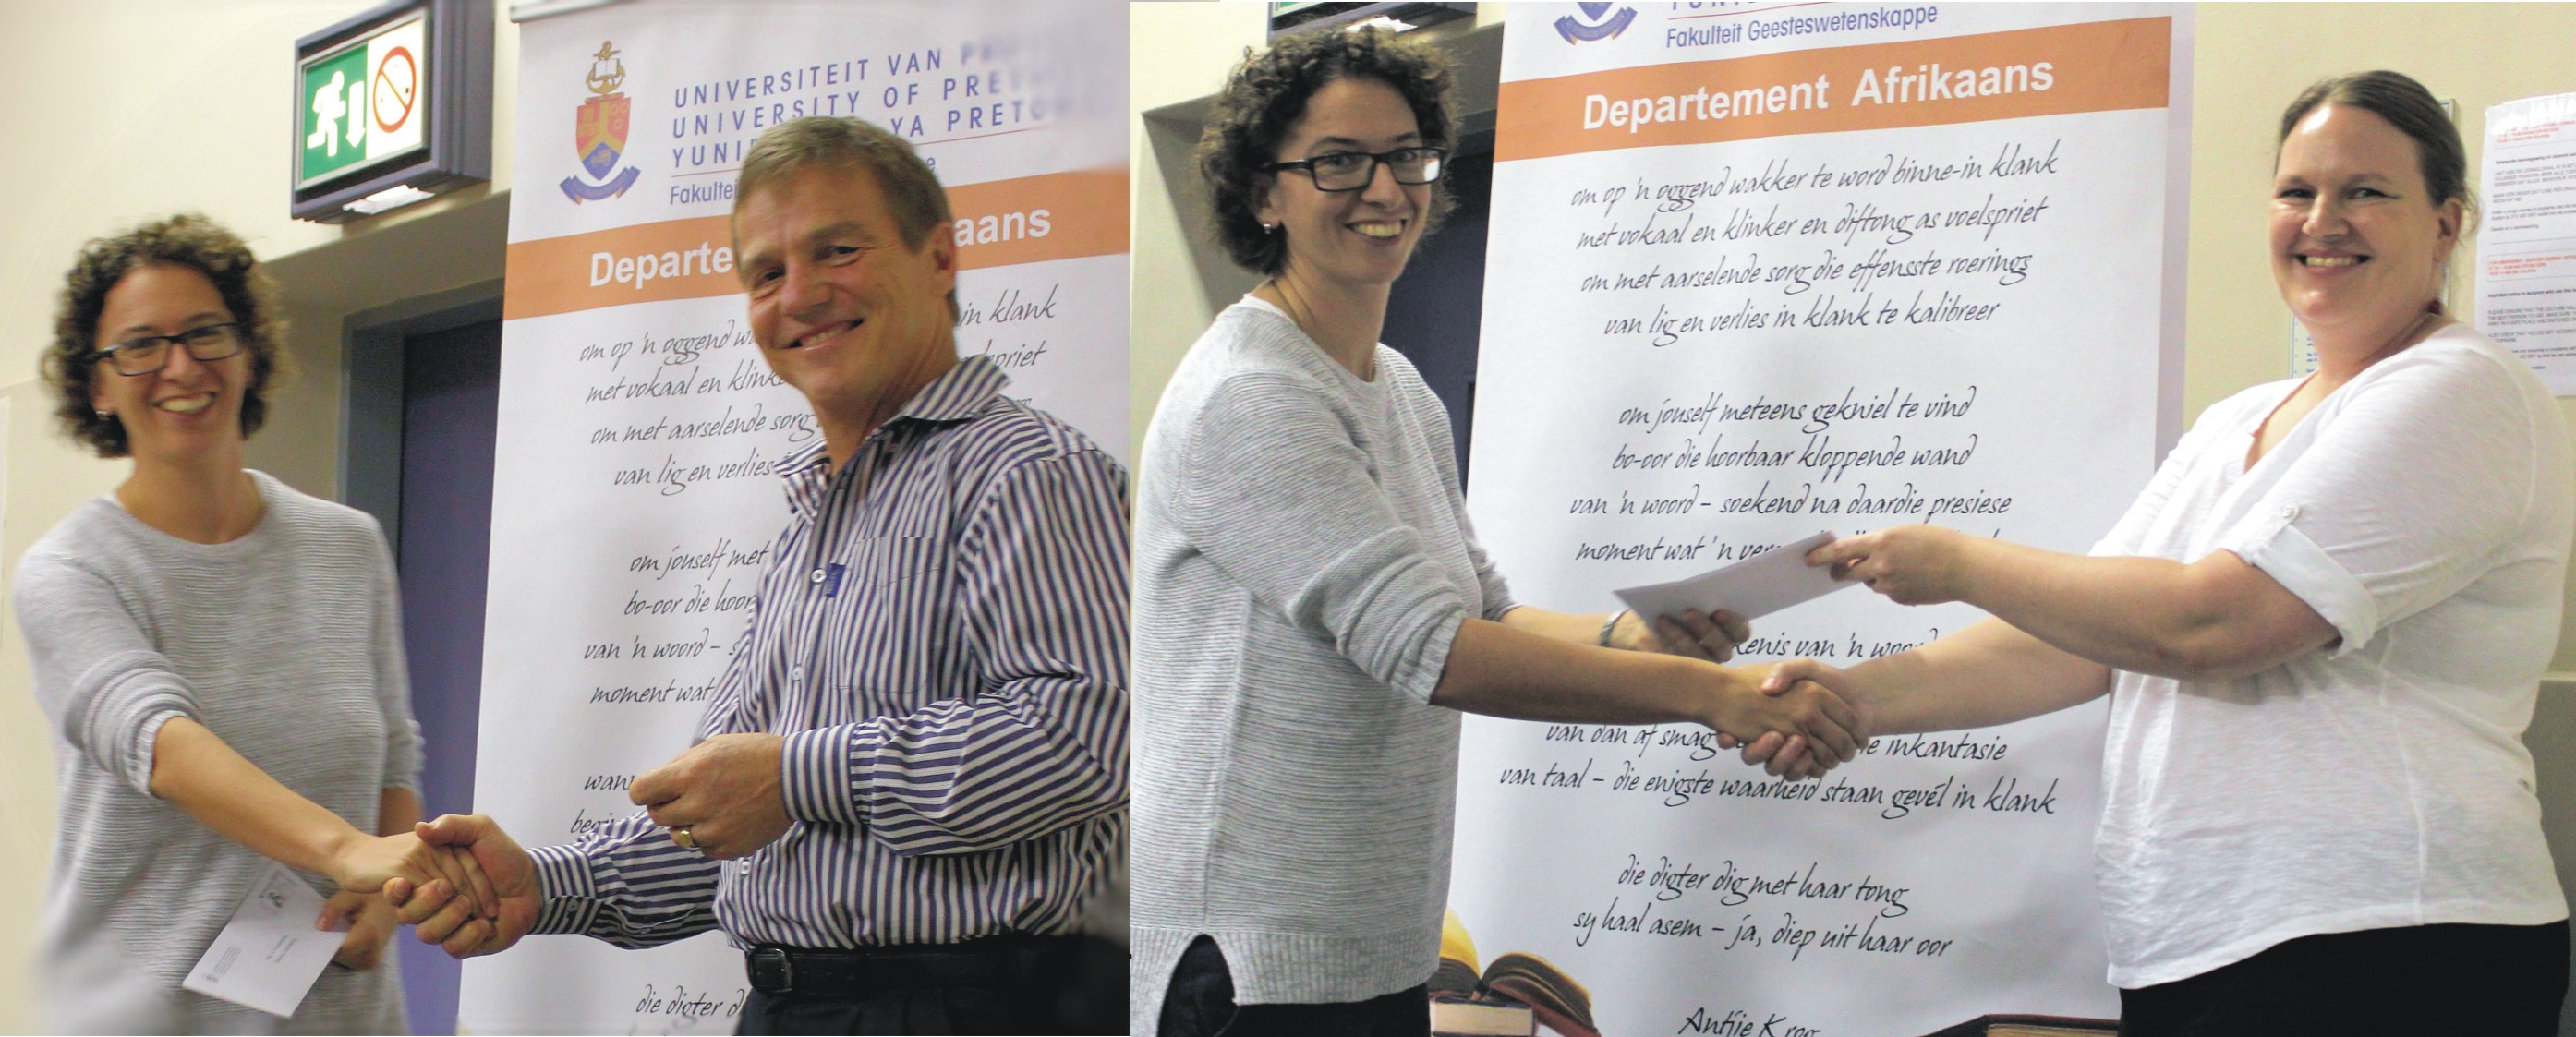 Anneli Groenewald receives the Marius Jooste prize and the NB-Uigewers bursary